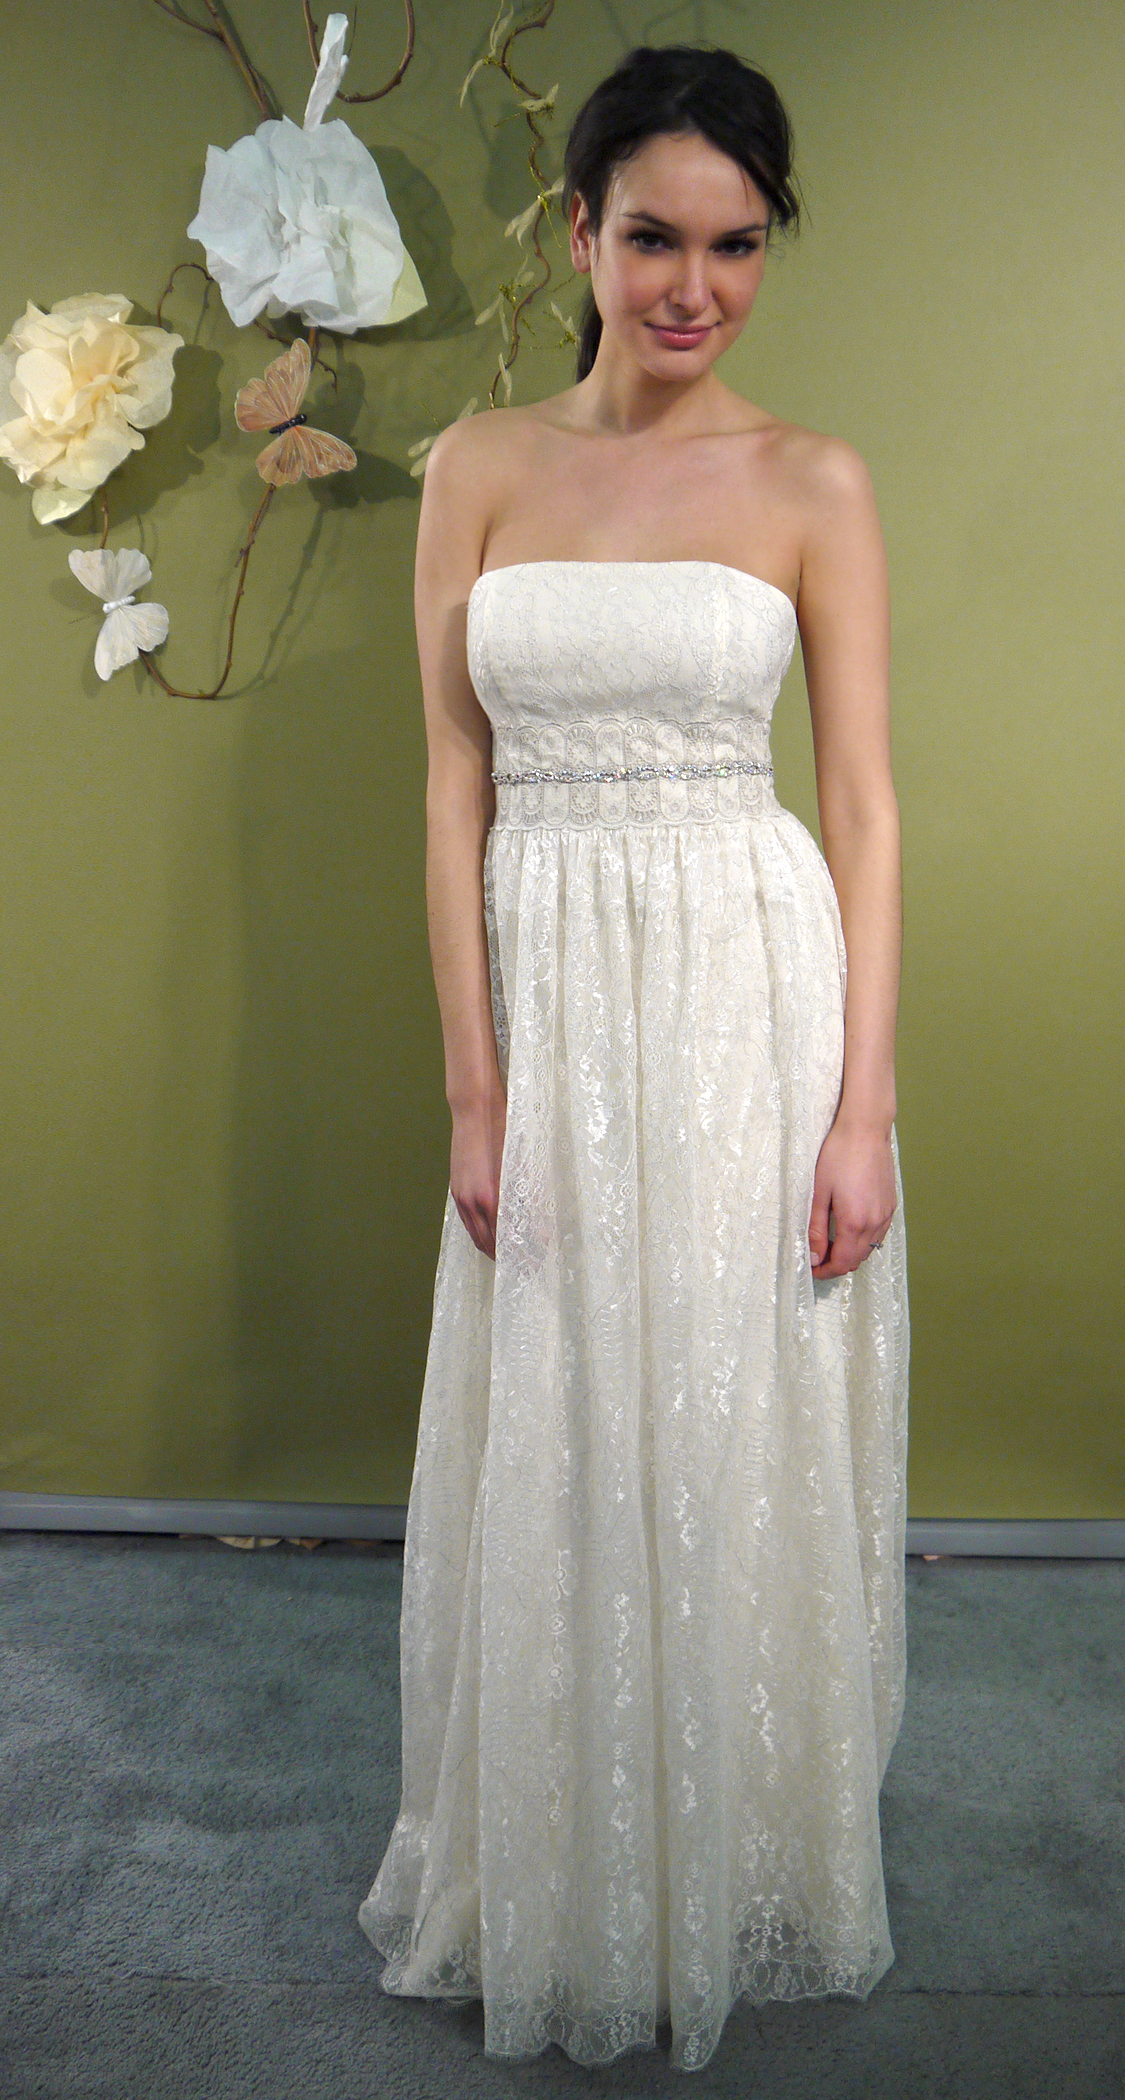 Fall-2011-wedding-dresses-norah-strapless-empire-wedding-dress-beaded-bridal-belt-claire-pettibone-lace-large.original